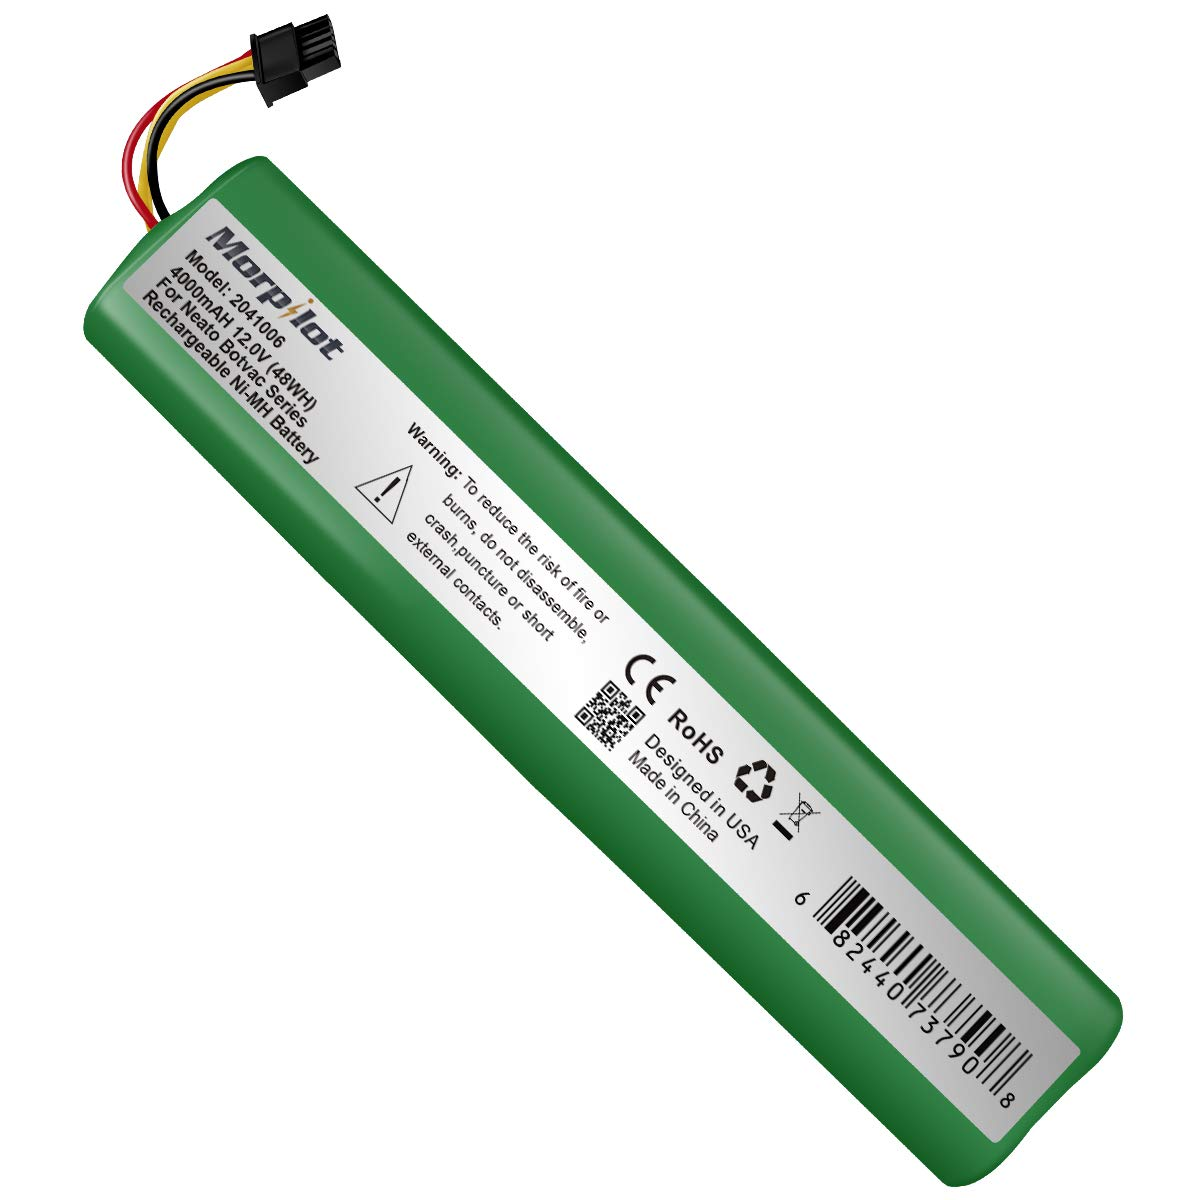 4000mAh 12V NiMh Replacement Battery for Neato Botvac Series 70e, 75, 80, 85 and Botvac D Series D75, D80, D85 (Not Compatible with Neato D3 D5 D7)